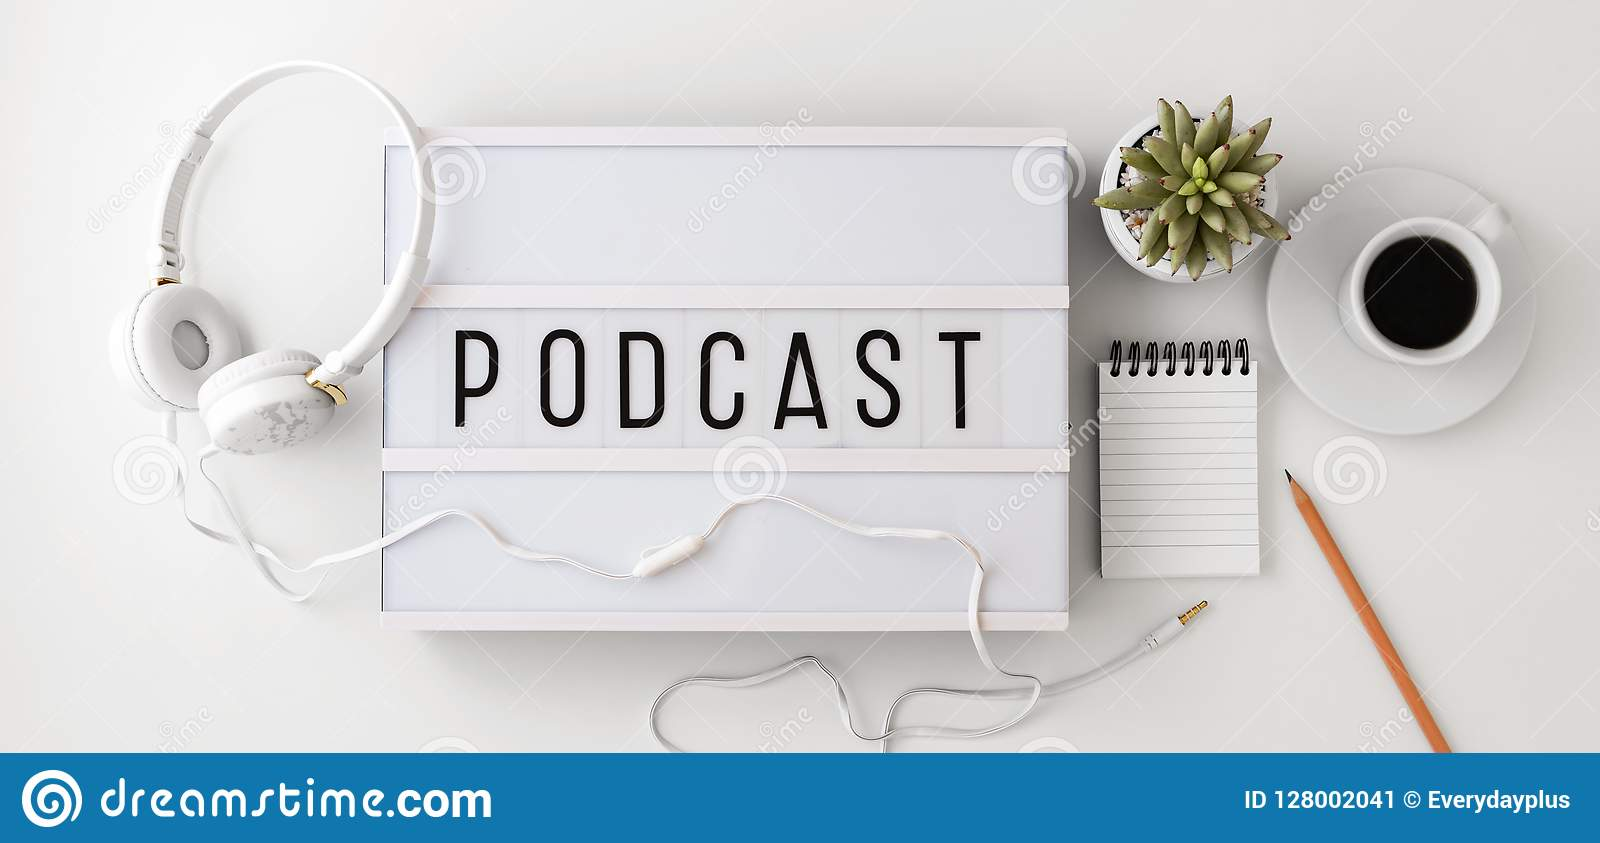 Podcast concept with headphones, notepad on white background, flat lay